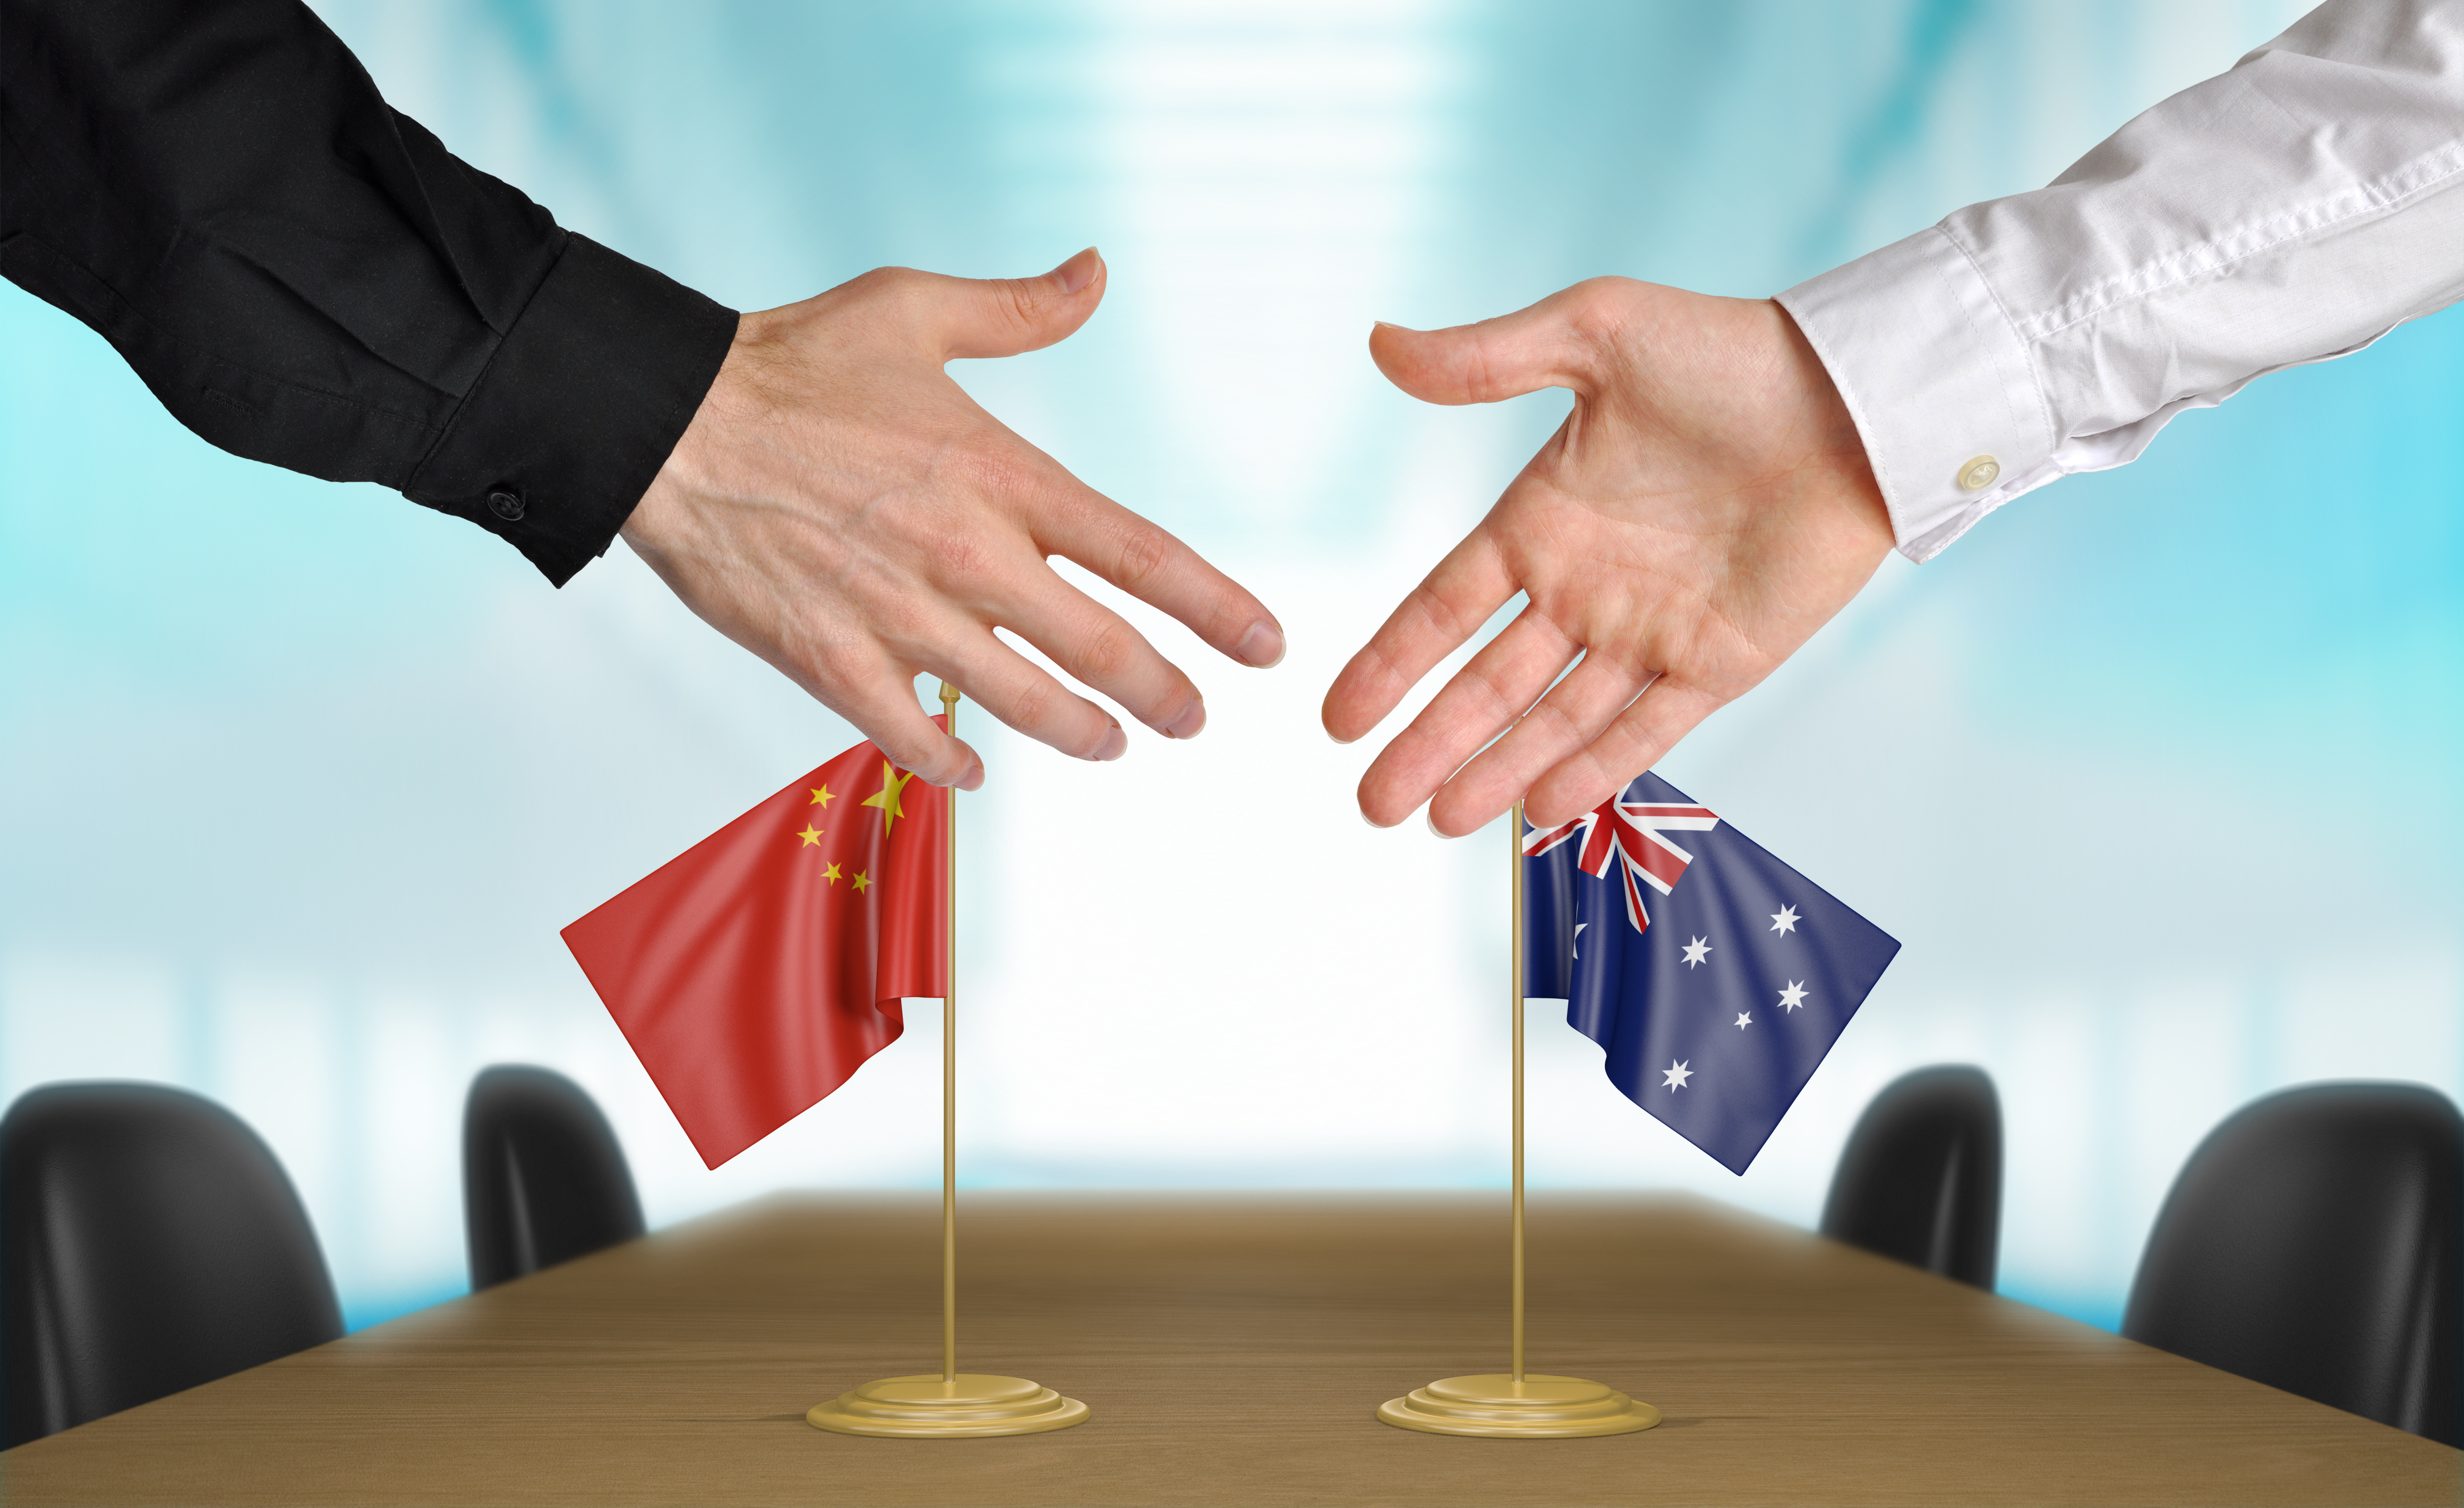 Expert opinion on rising tensions with China